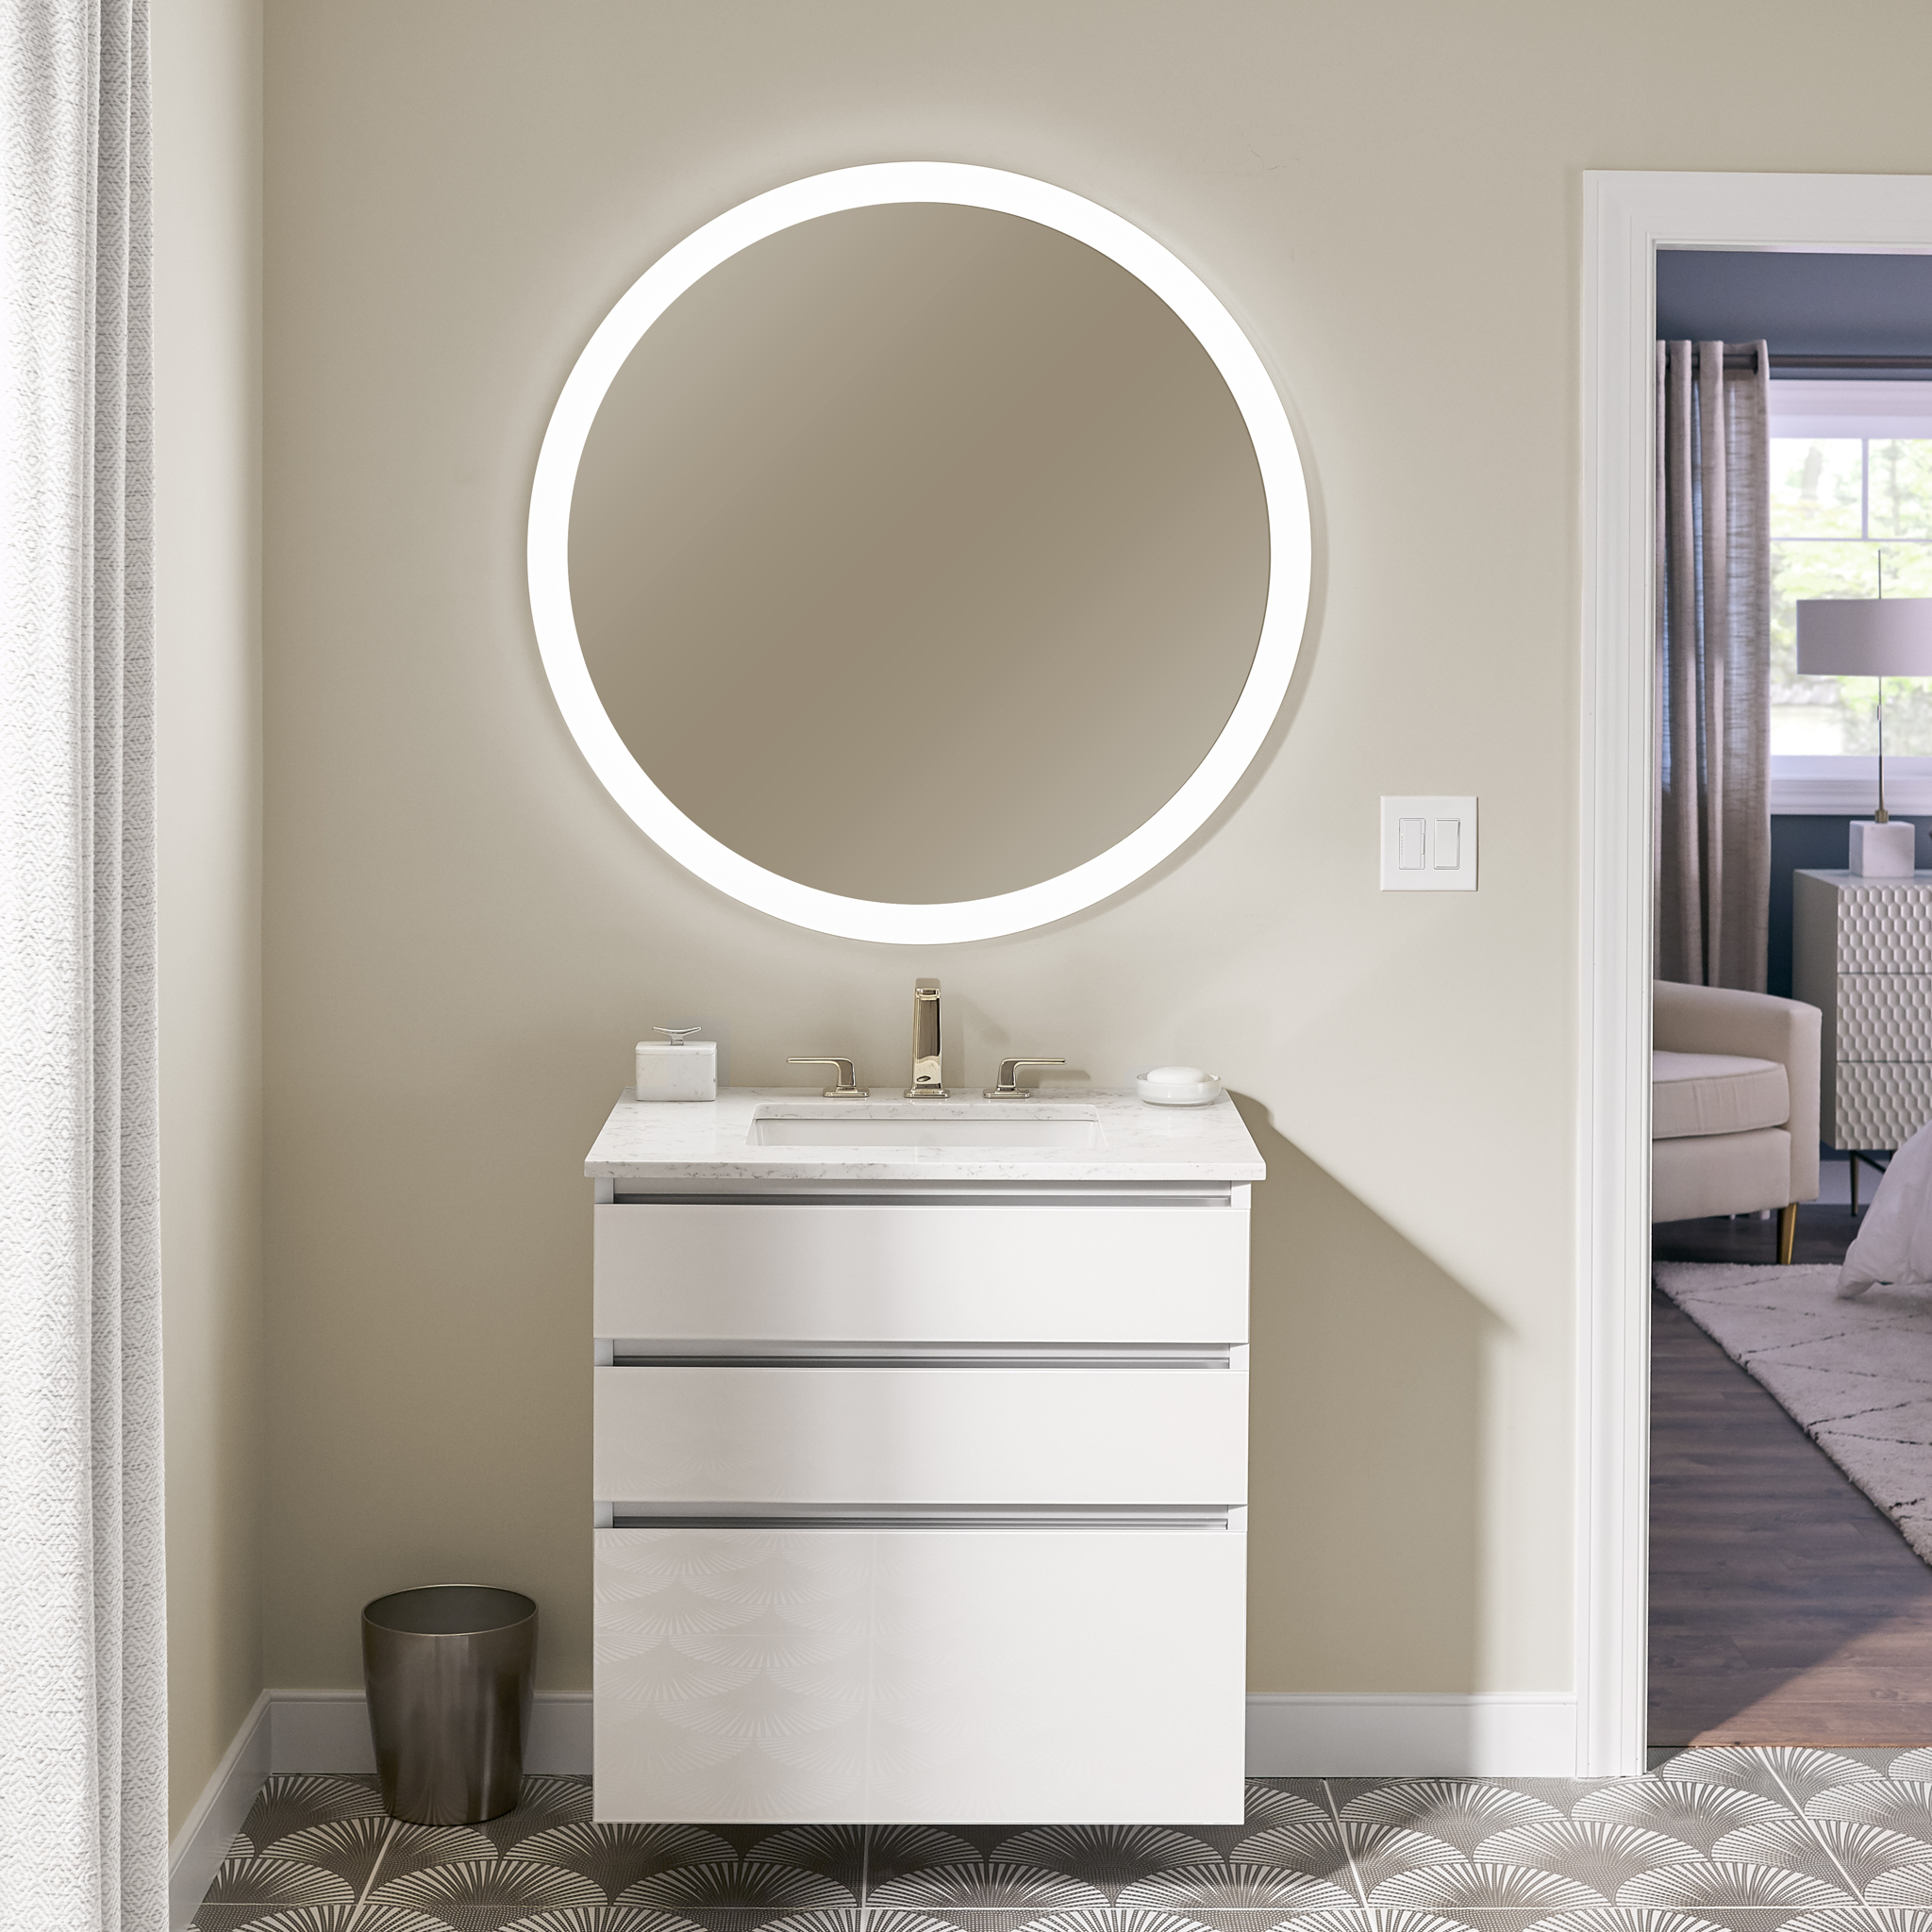 Ordinaire Robernu0027s New Vitality Line Brings High End Lighted Mirrors To  Budget Conscious Projects | Robern